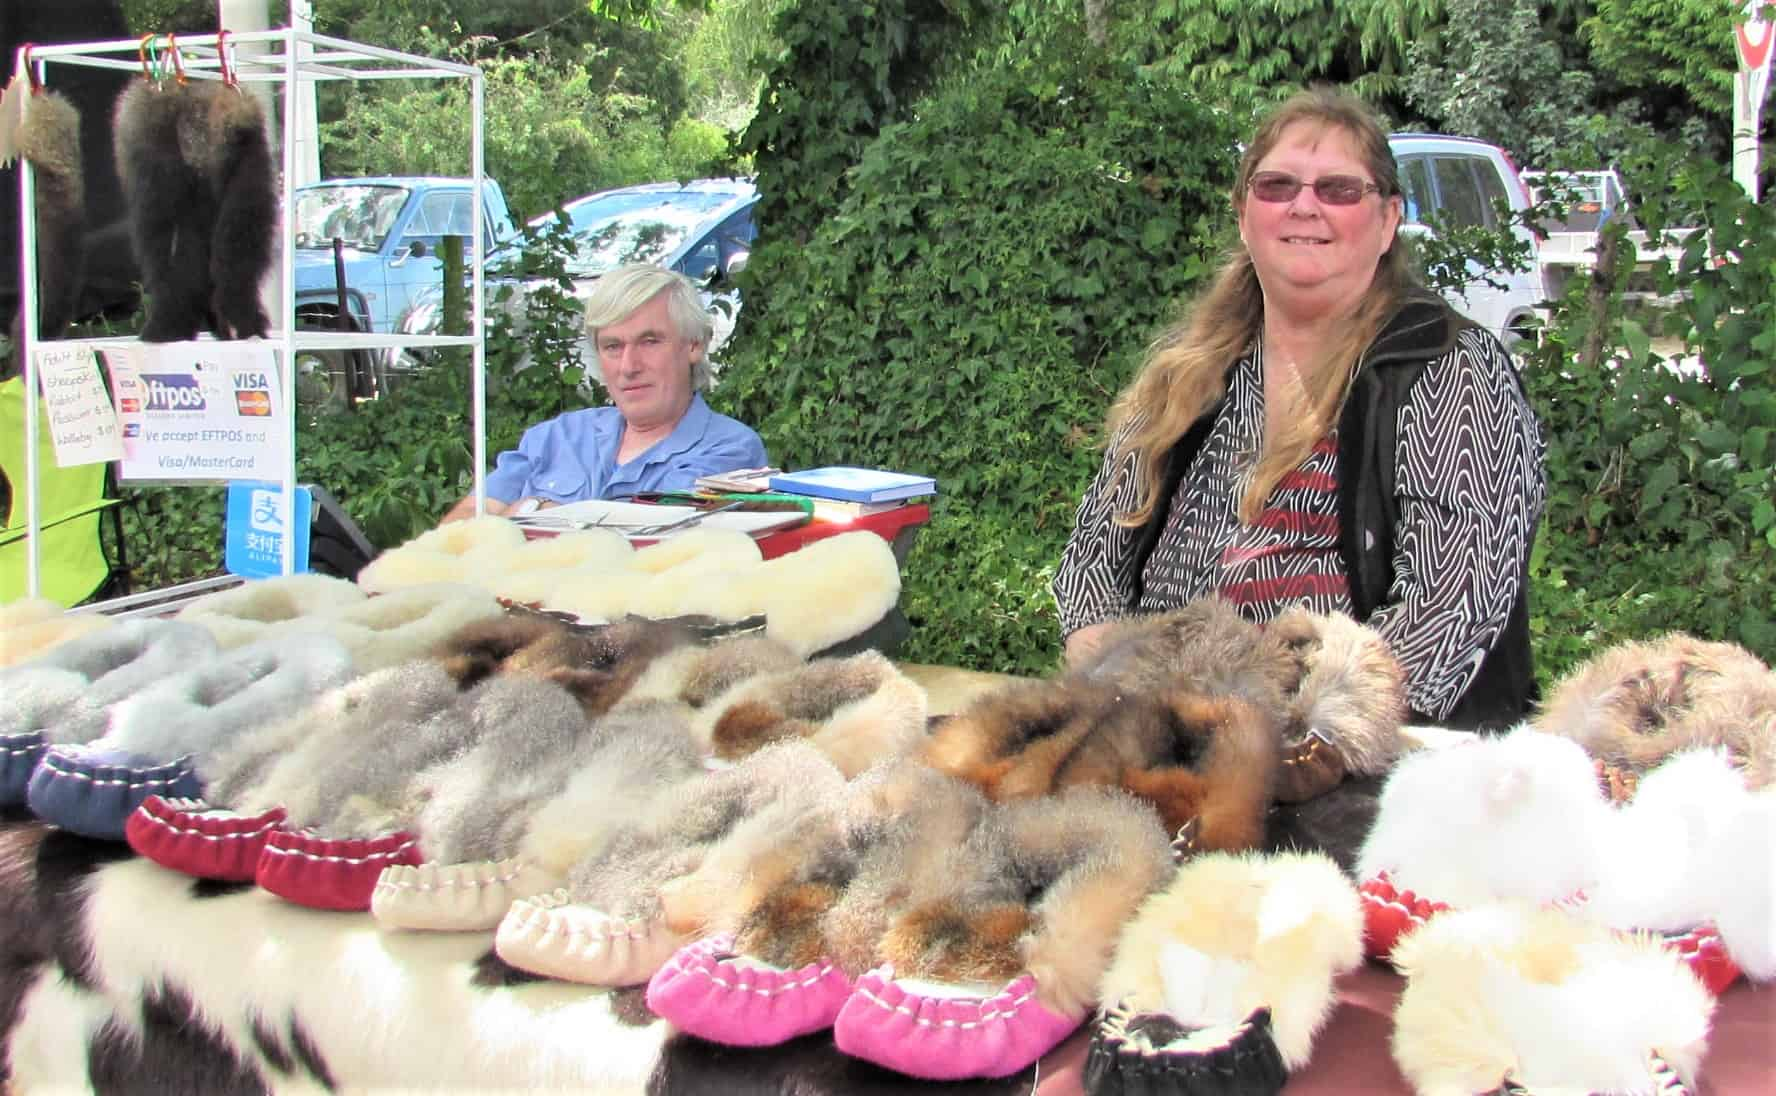 Rob, Jan and slippers at the Athol Valley Market.